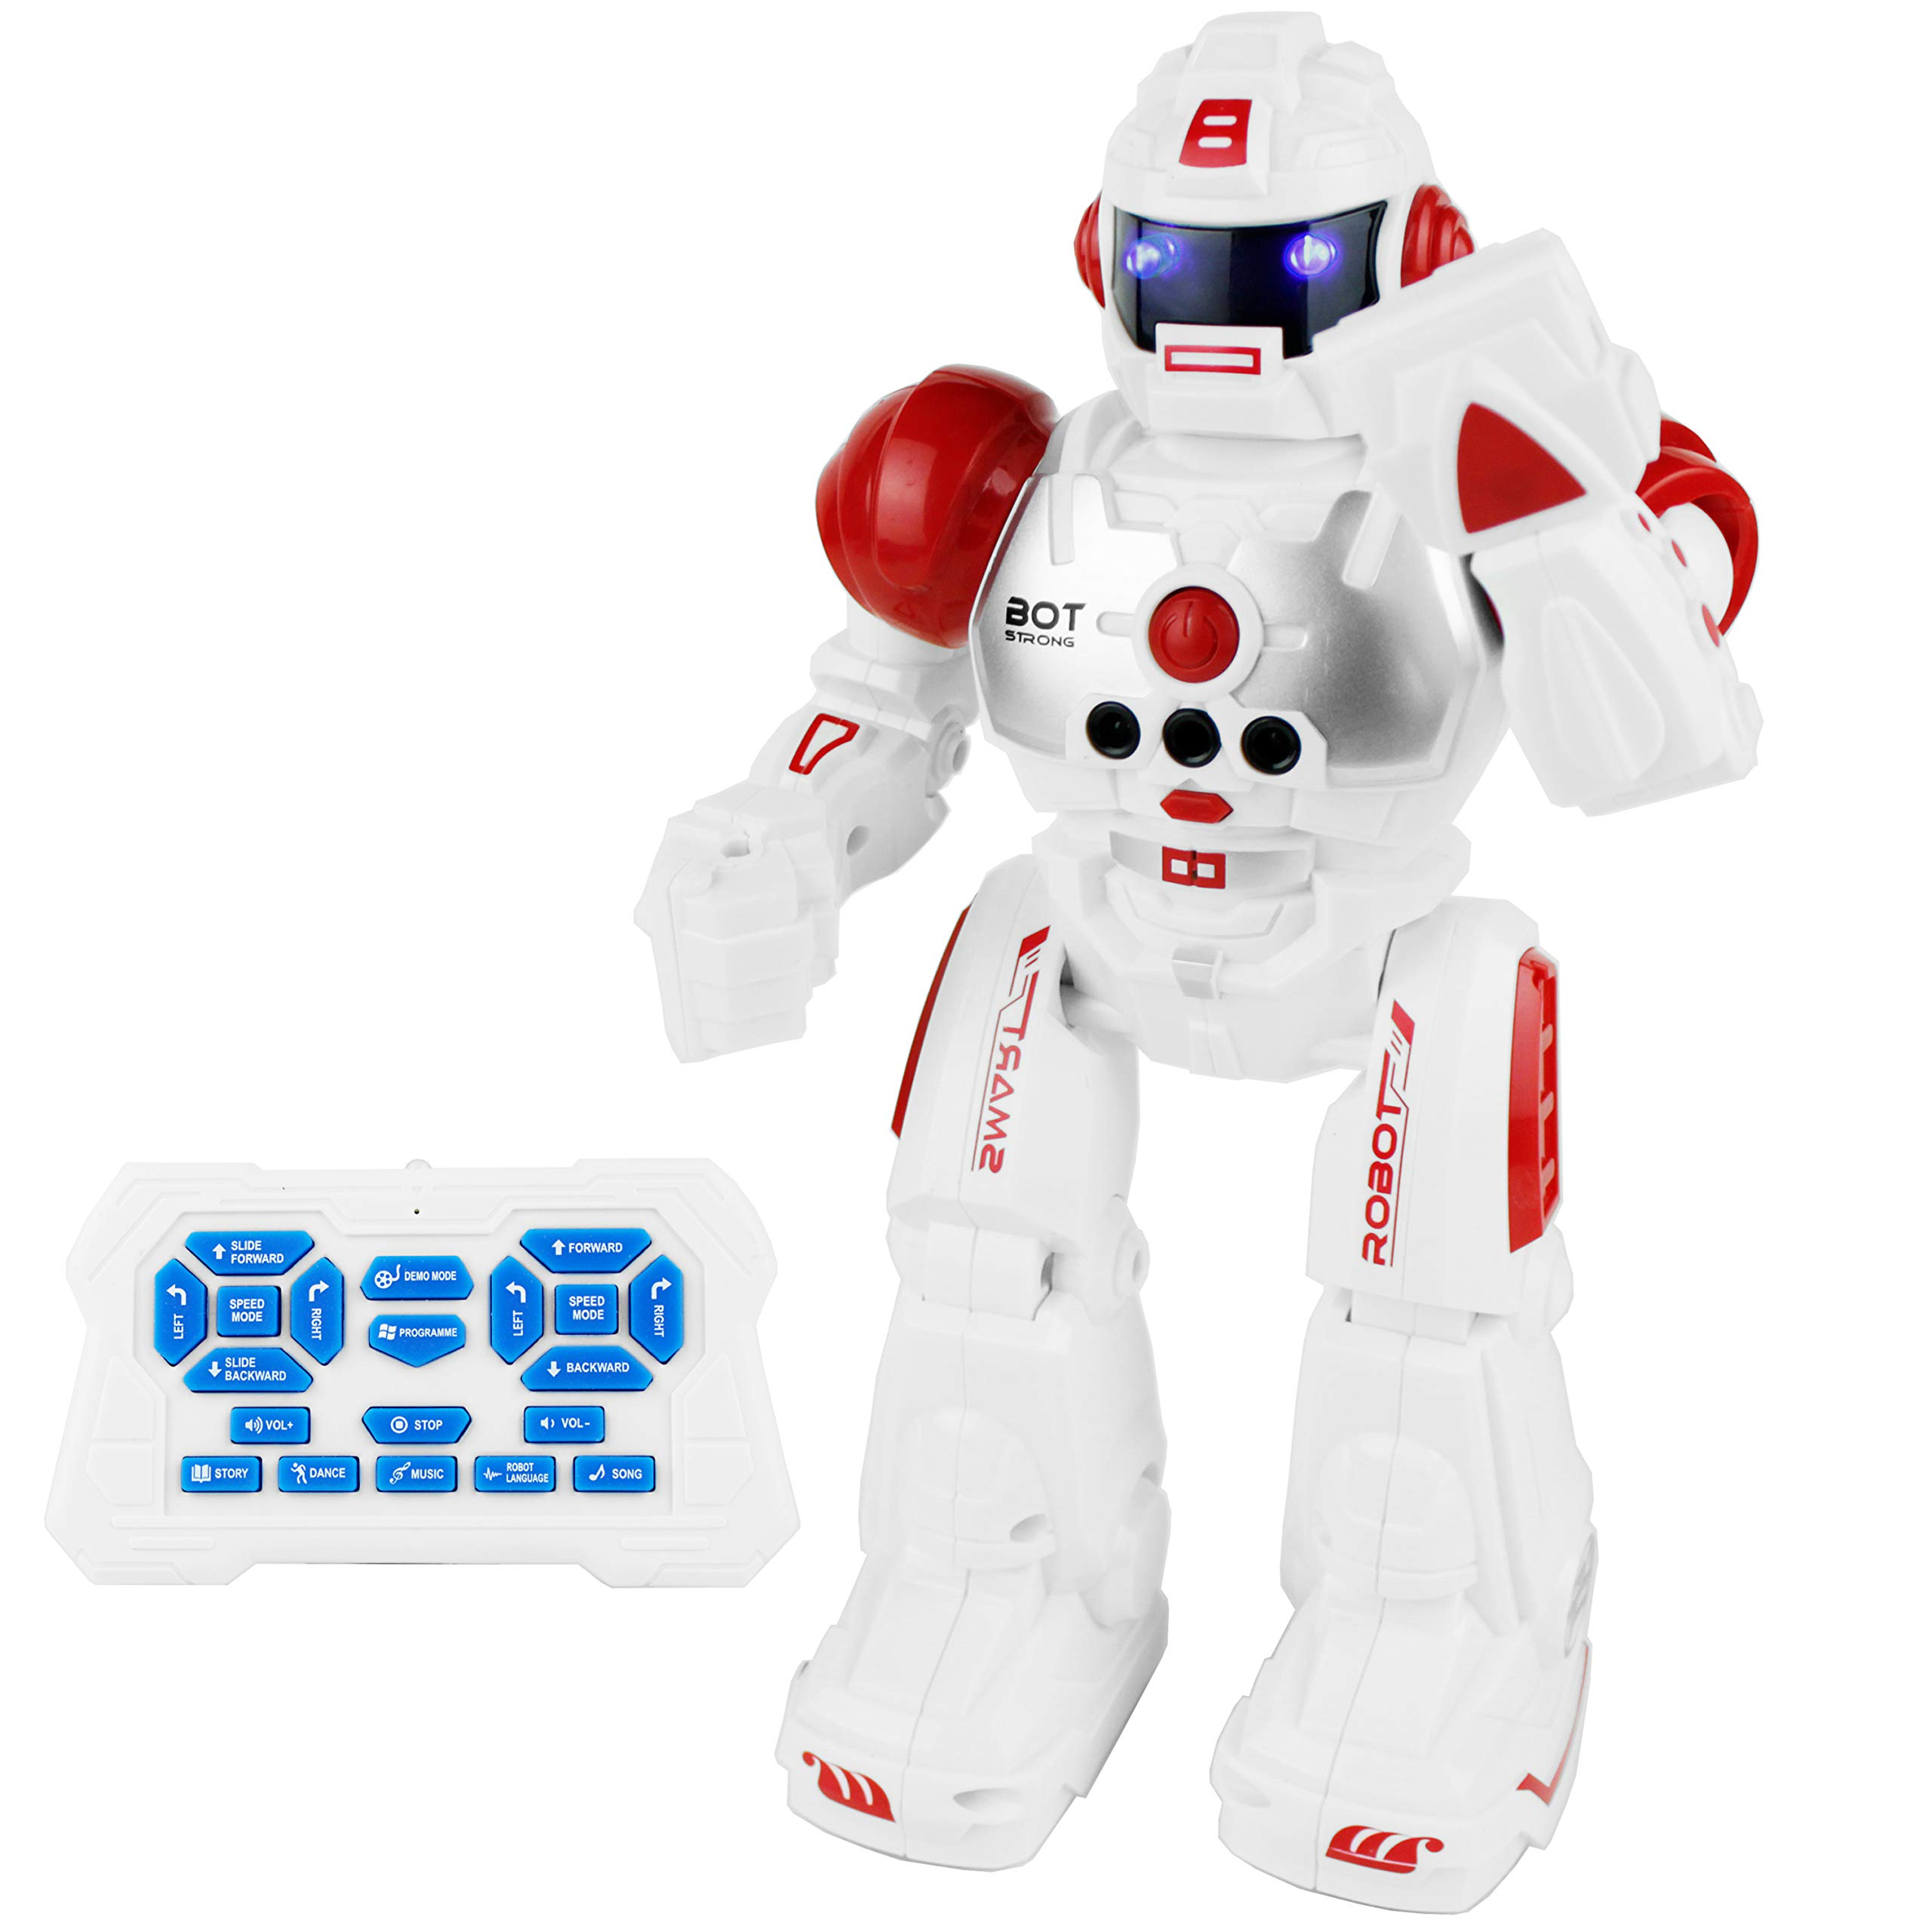 Boley 2099 RC Remote Controlled Robot for Kids - Intelligent Programmable with Infrared Controller Toys, Dancing, Singing, Talking Robot Friend Kids - Red by Boley (Image #1)